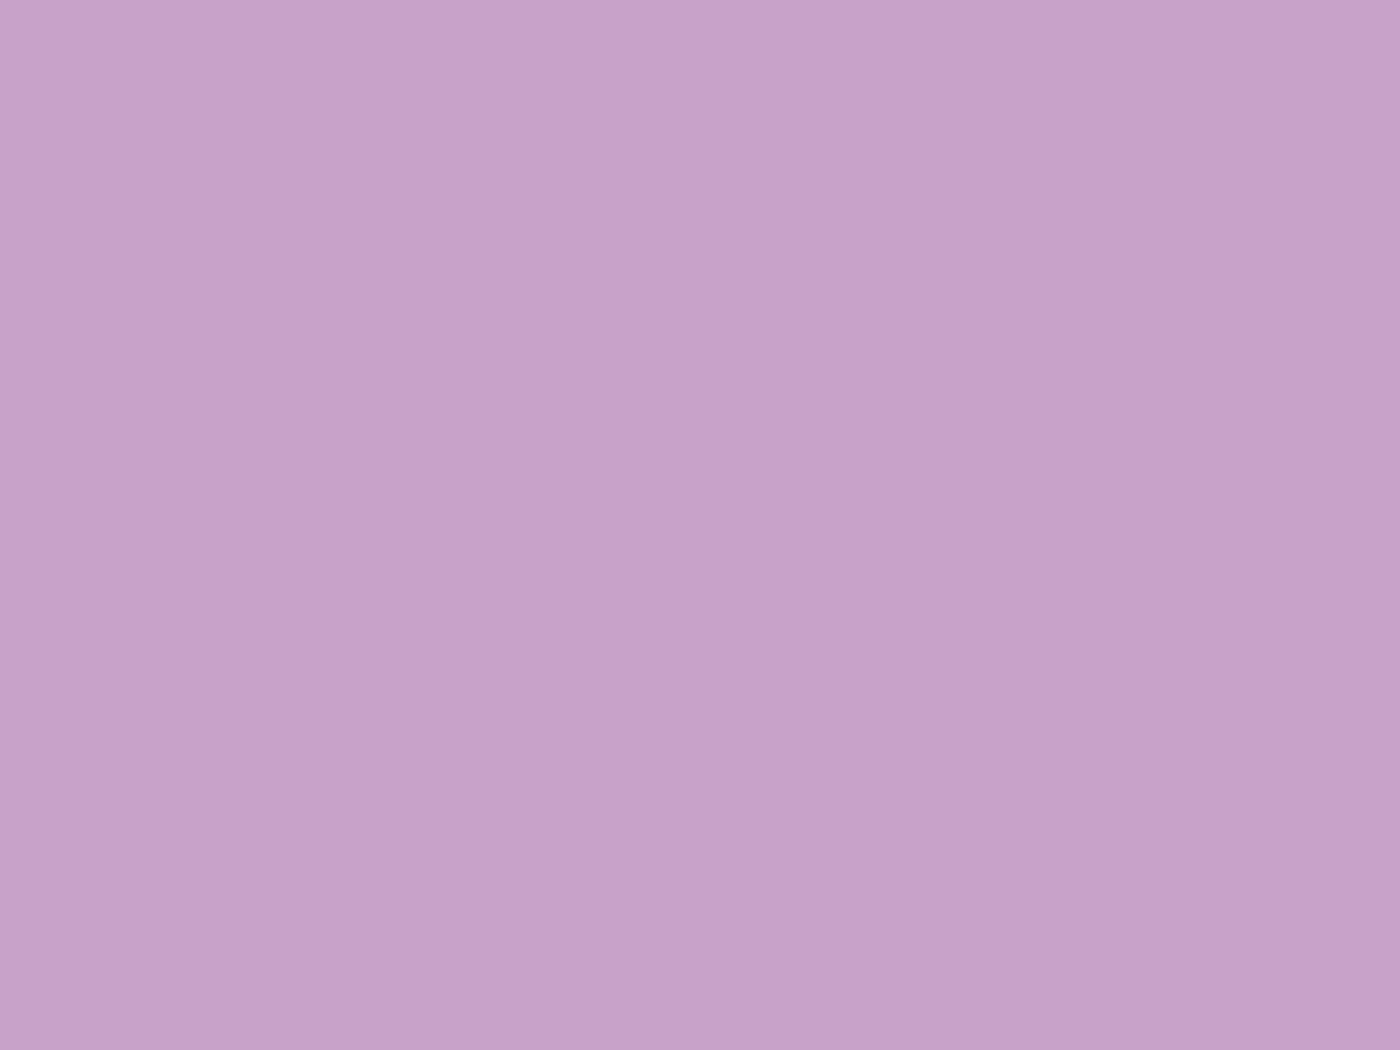 1400x1050 Lilac Solid Color Background